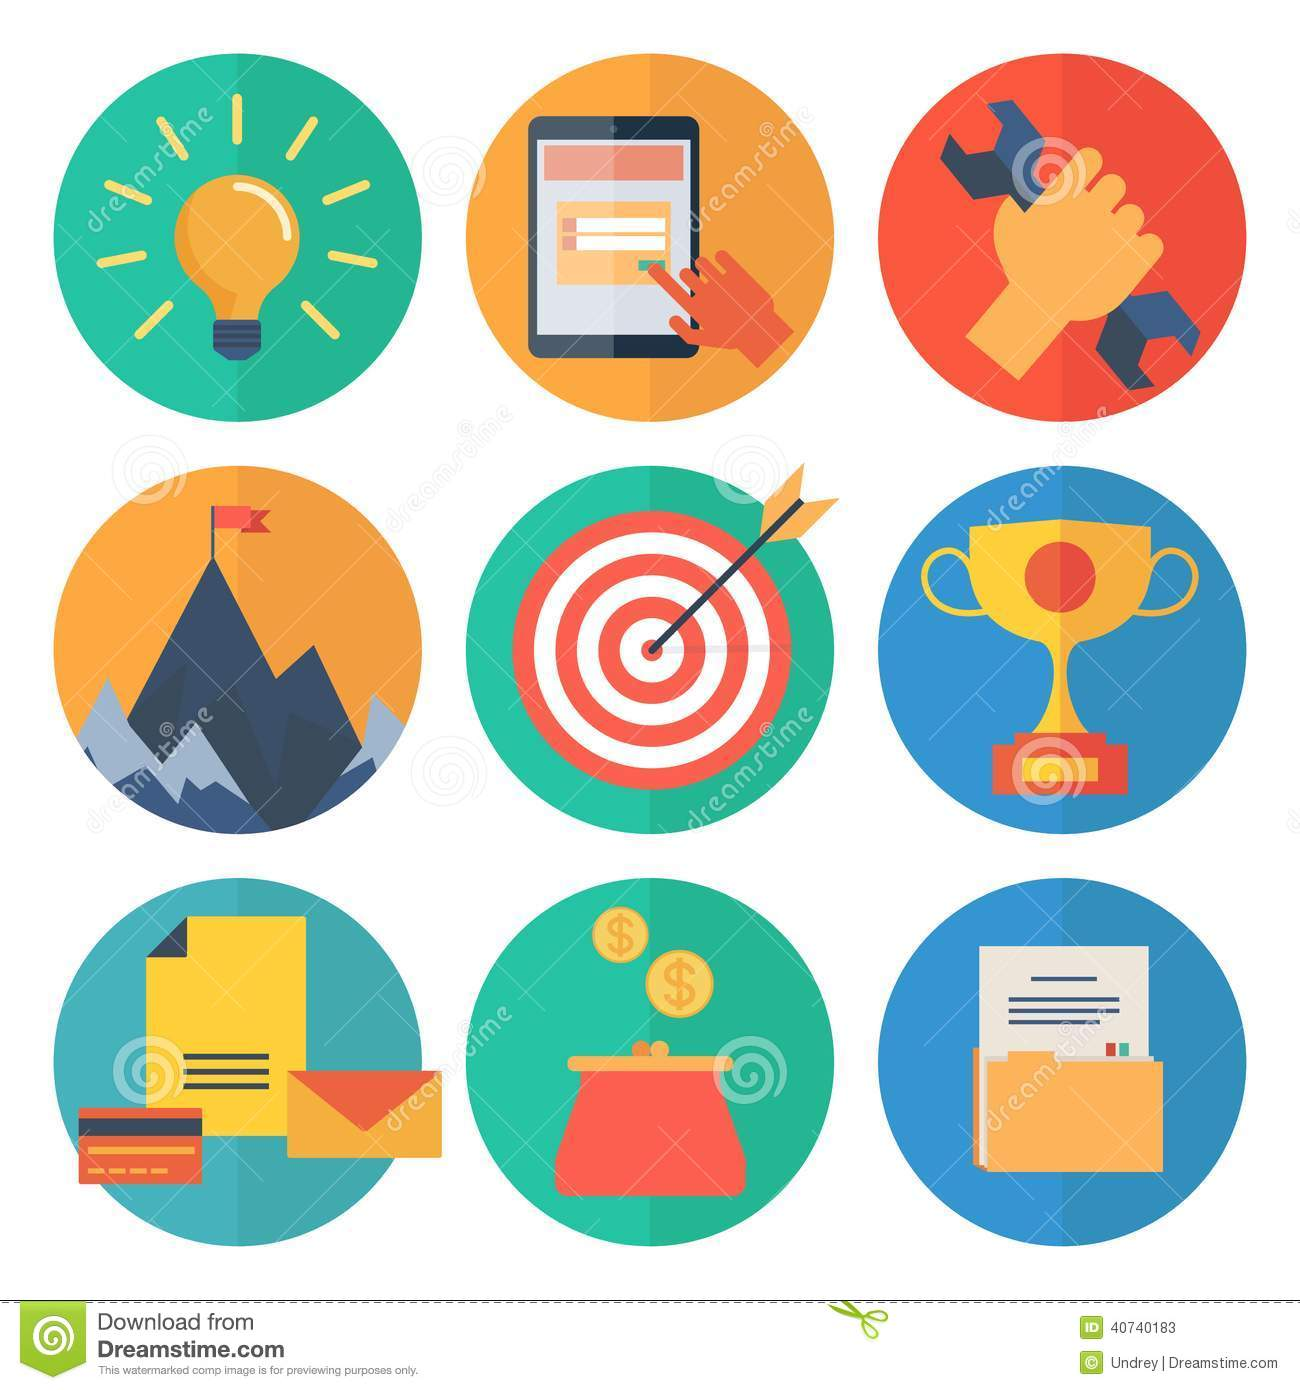 Modern flat icons vector collection, web design objects, business, office and marketing items